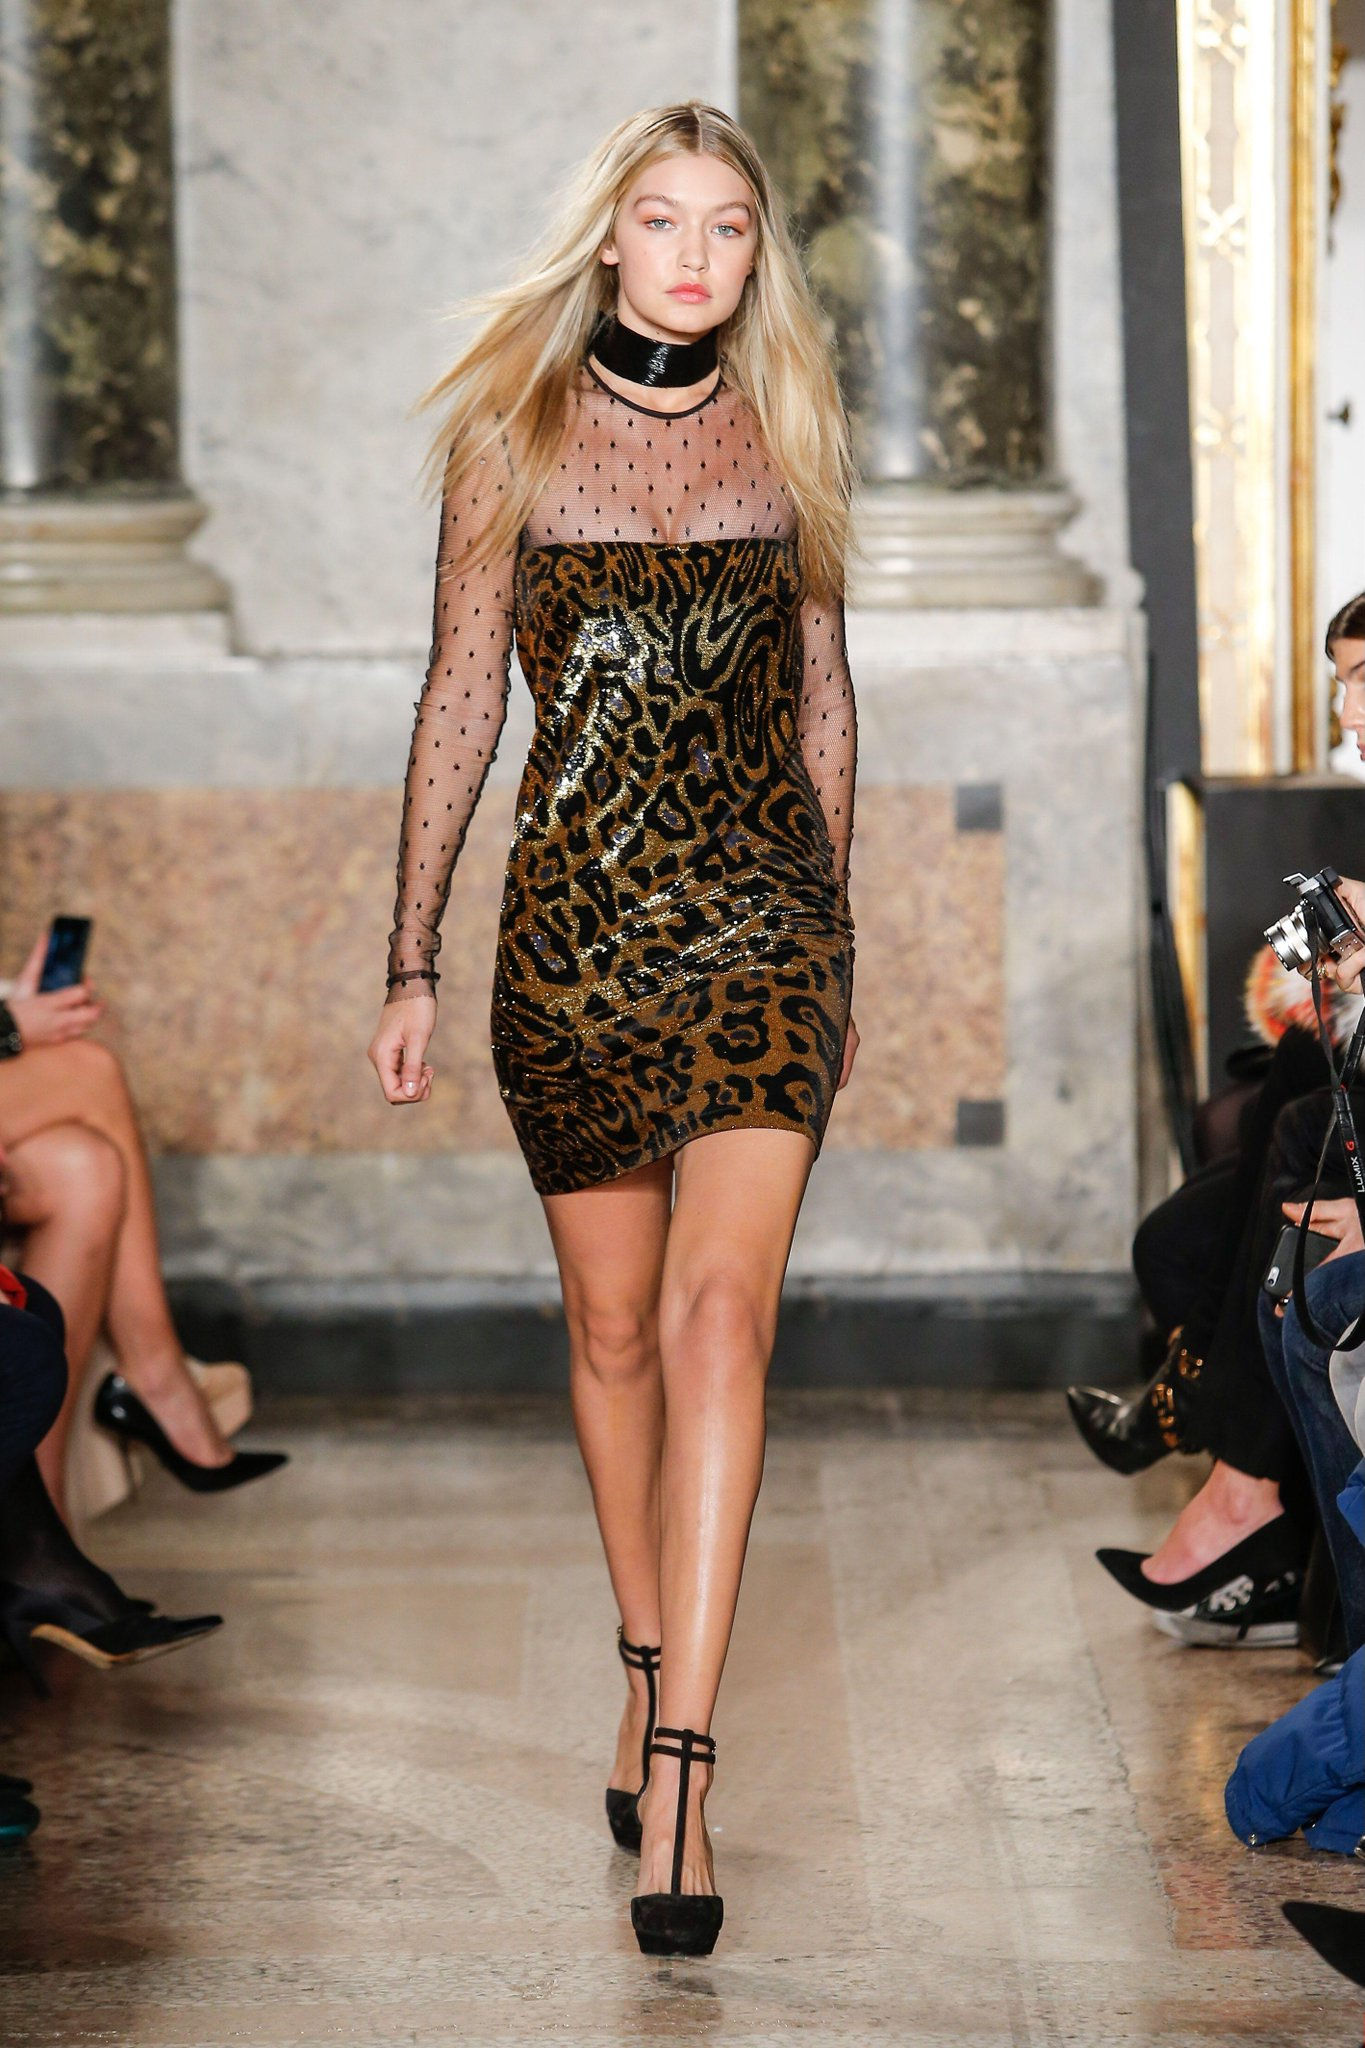 Gigi, Karlie and a whole host of supers stepped out for Emilio Pucci's amazing show http://t.co/urdxjYzvGP http://t.co/rPfg6a2cvx